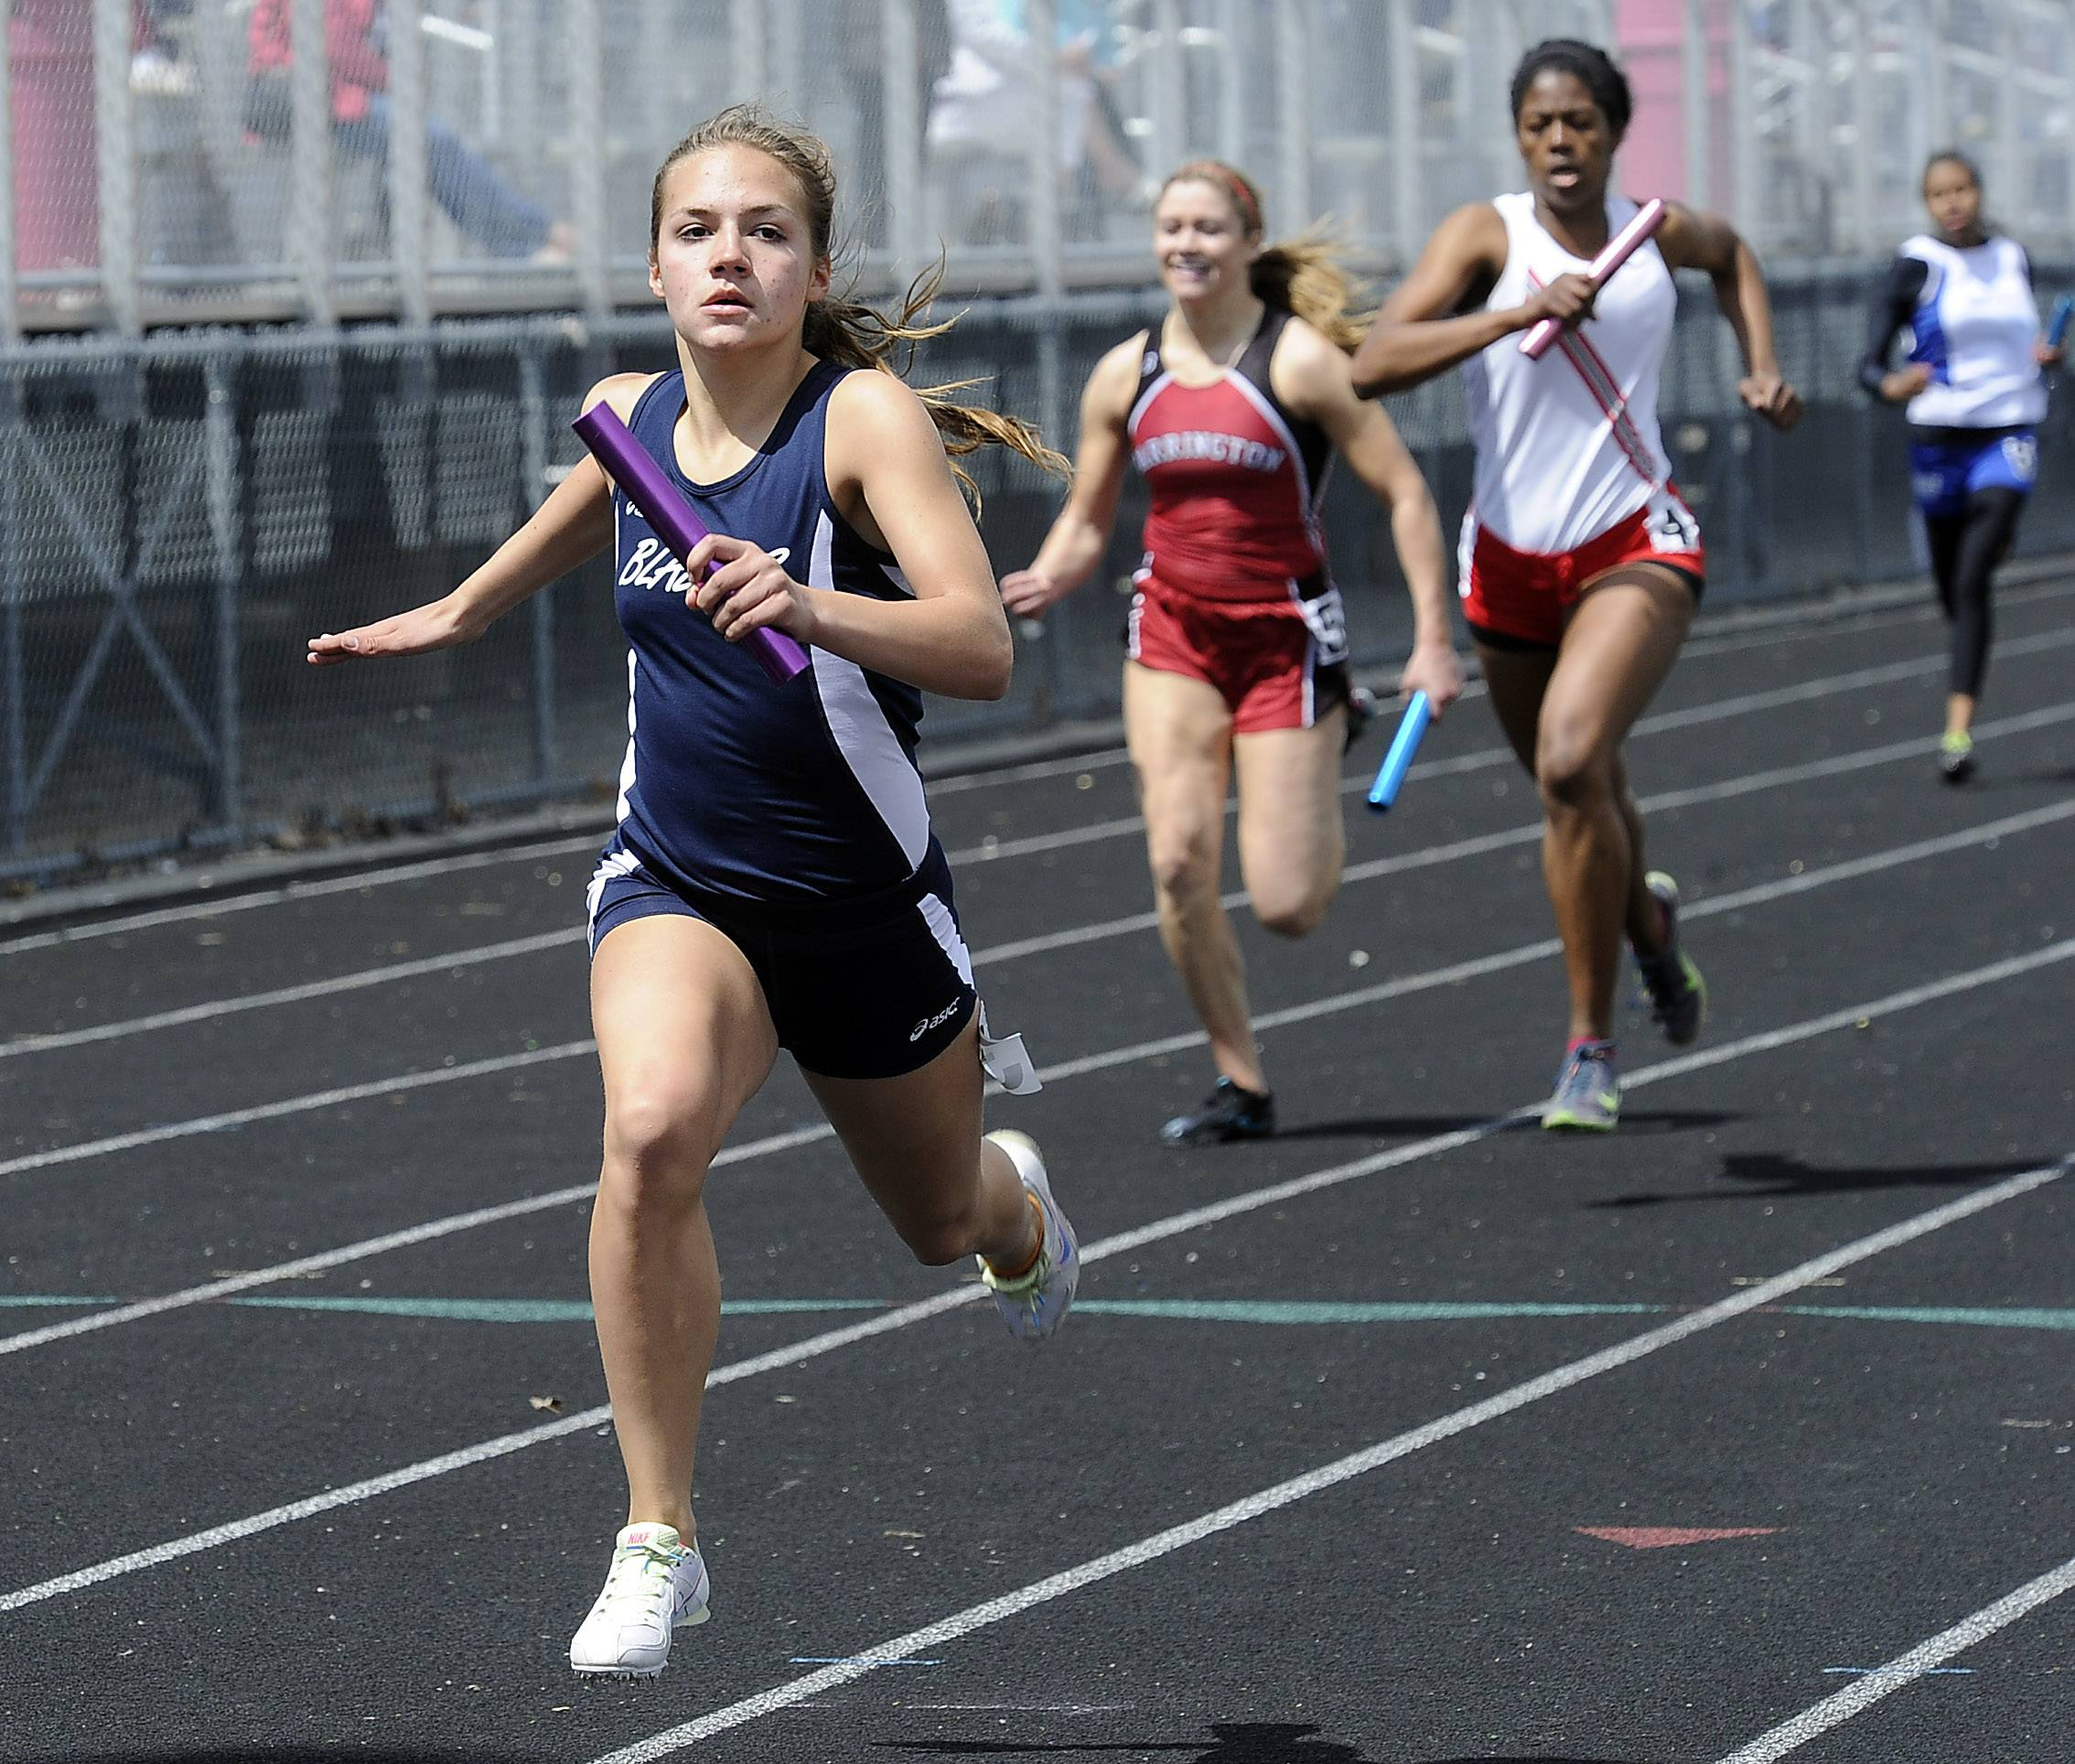 Lauren Kroll of Addison Trail finishes a victory in the 4x200 relay on Saturday at Palatine High School.